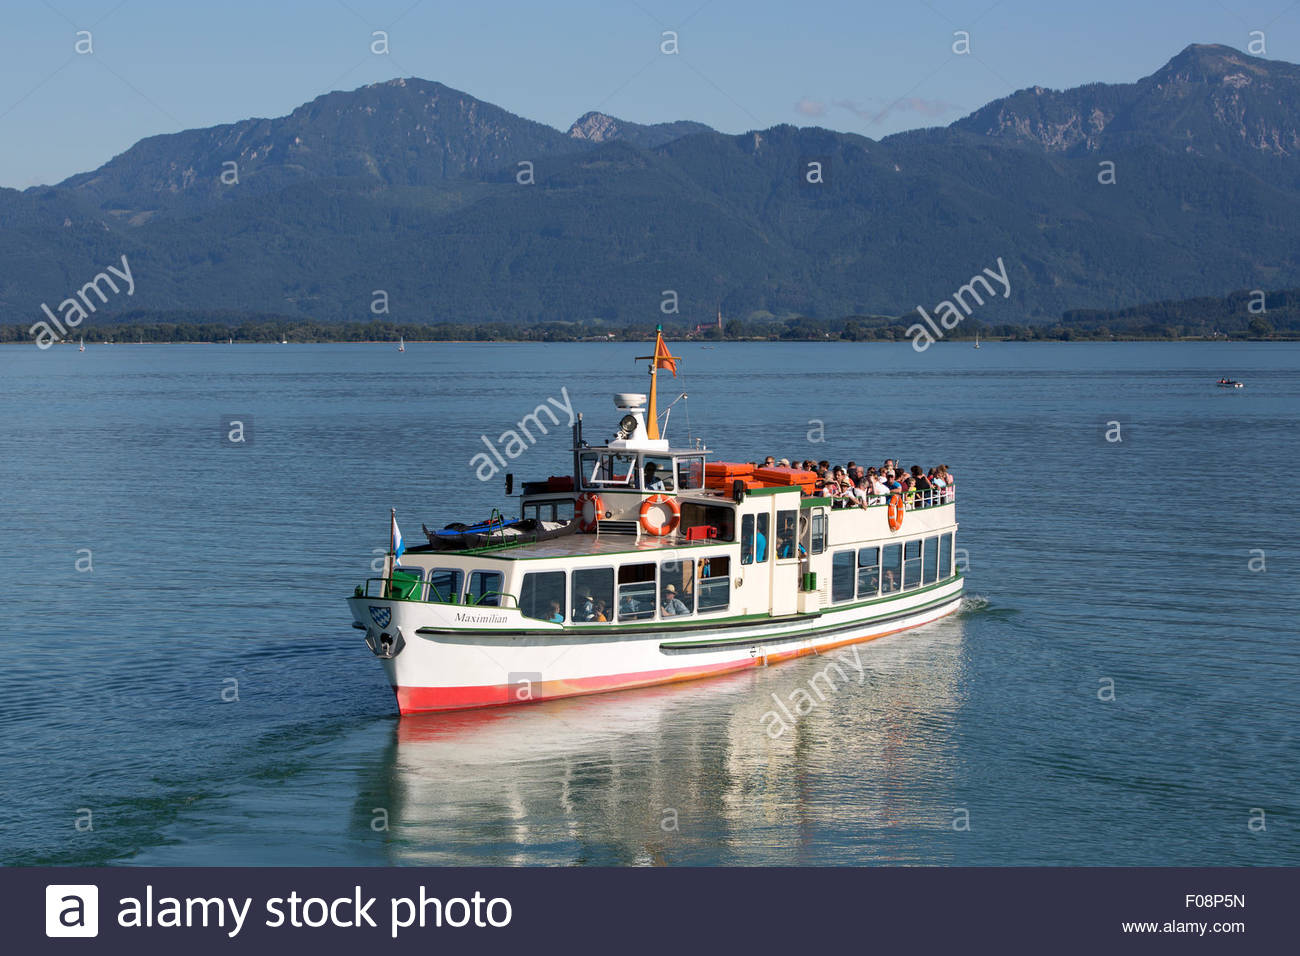 Visitors on a steamship at lake Chiemsee in Bavaria, South Germany - Stock Image